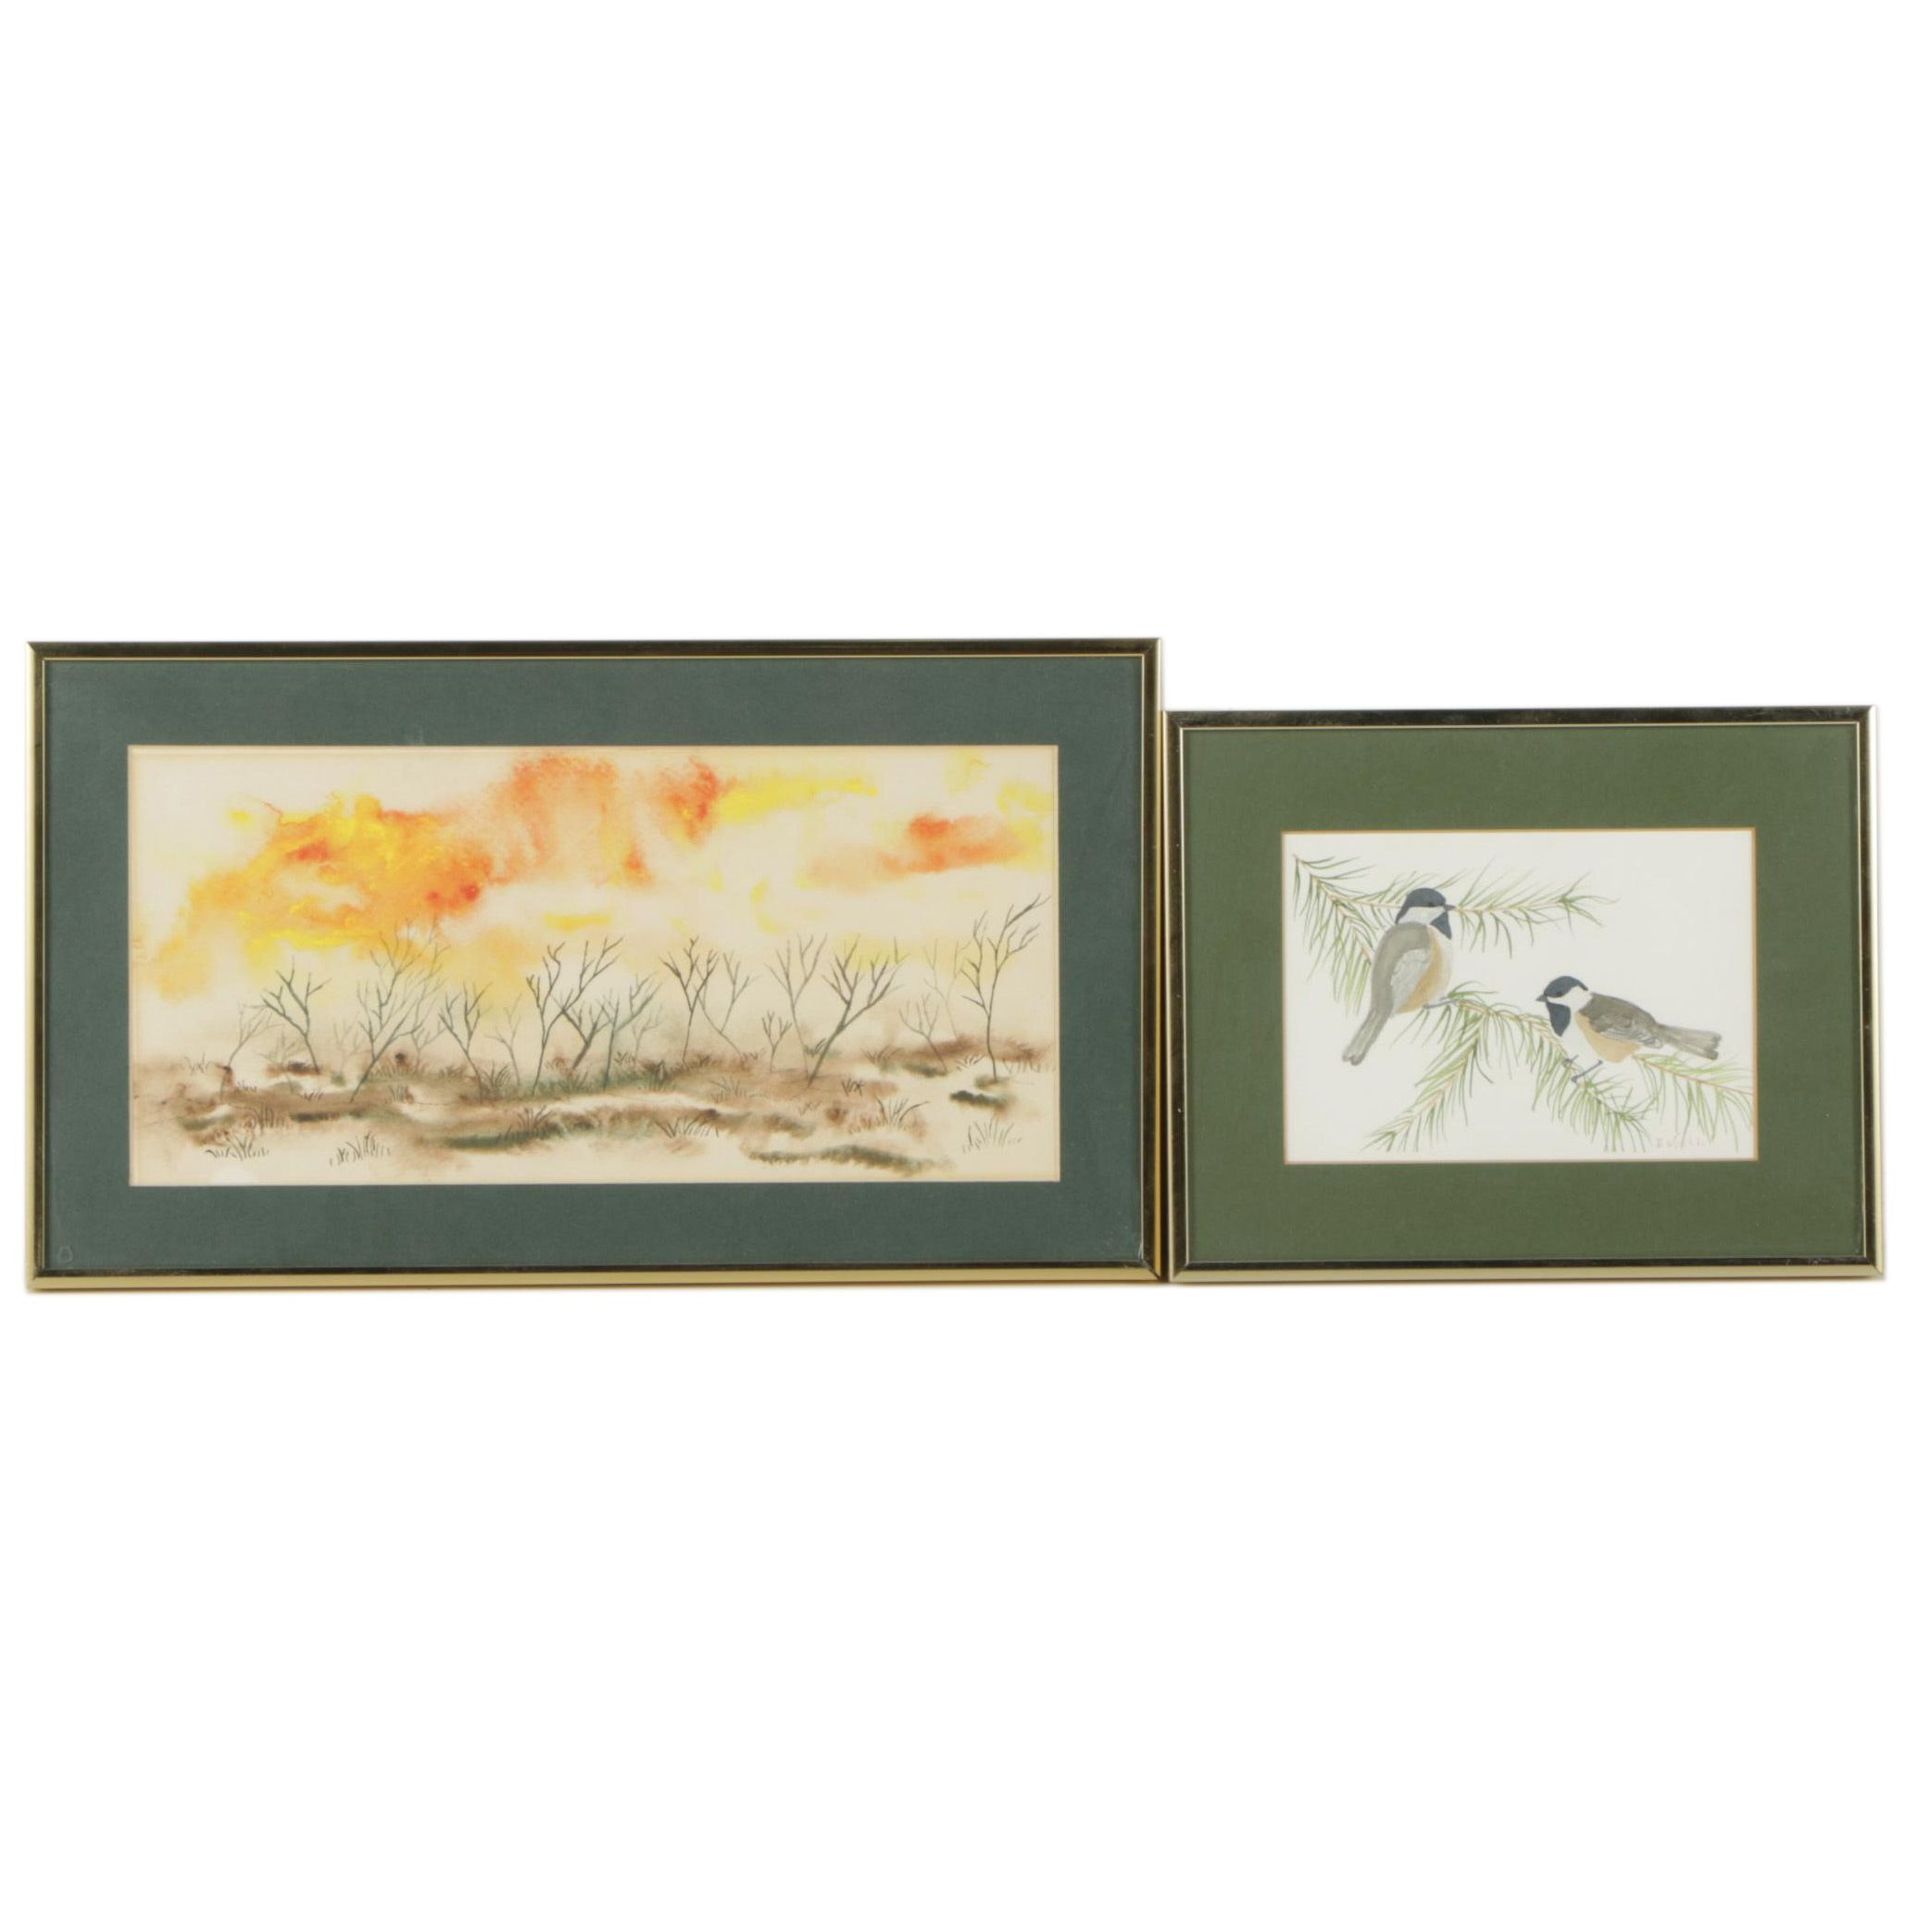 Watercolor Paintings of a Landscape and Birds Including Daunis Winkle